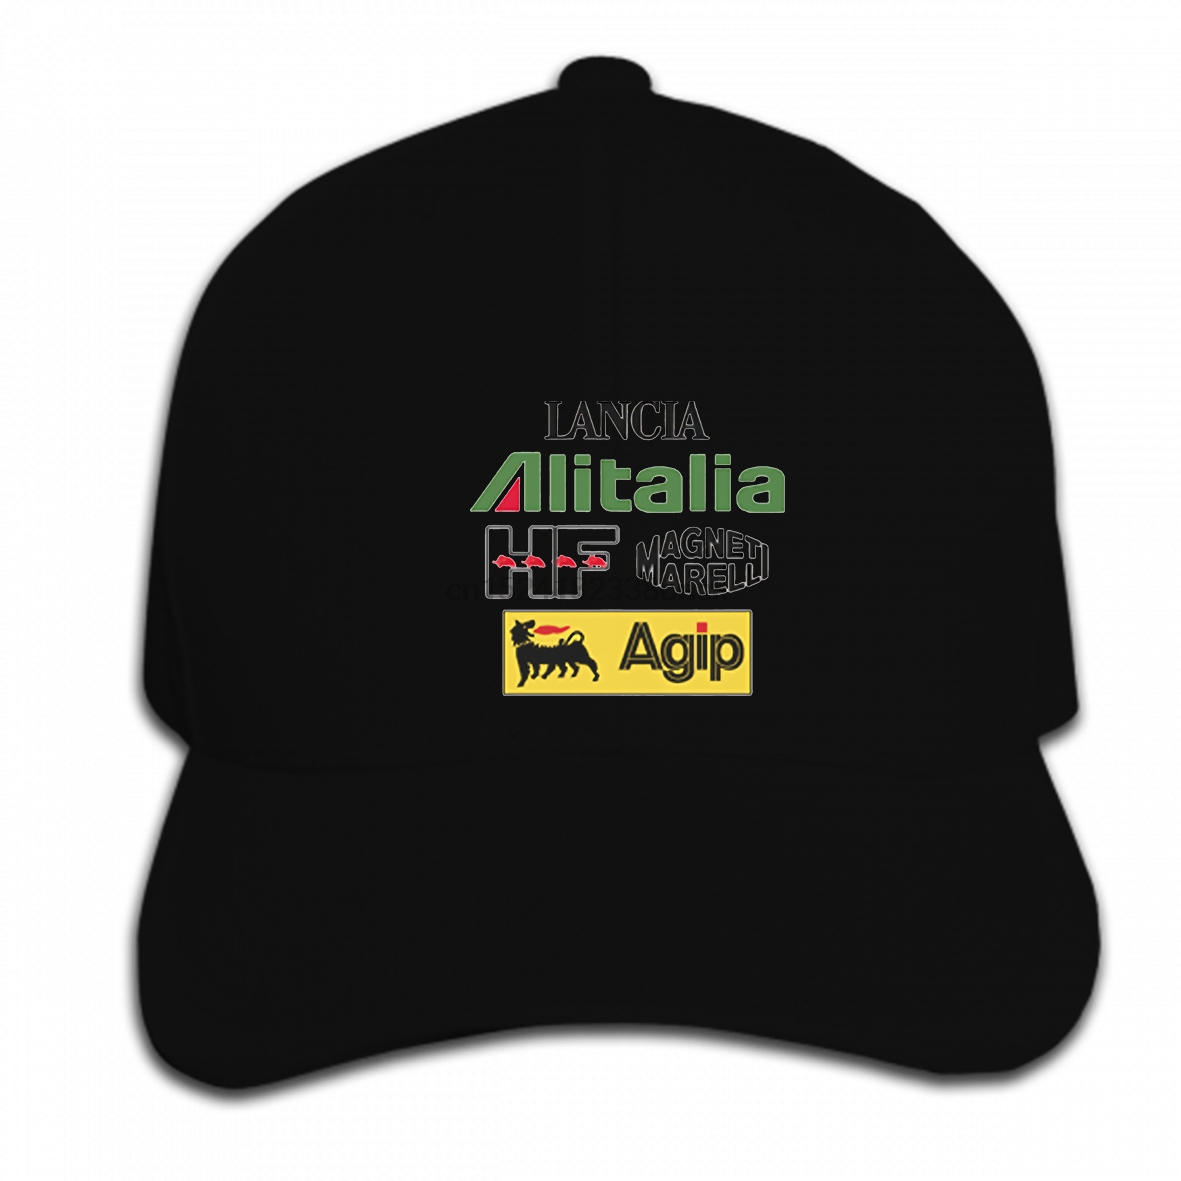 08165e51476c Buy rally caps and get free shipping on AliExpress.com